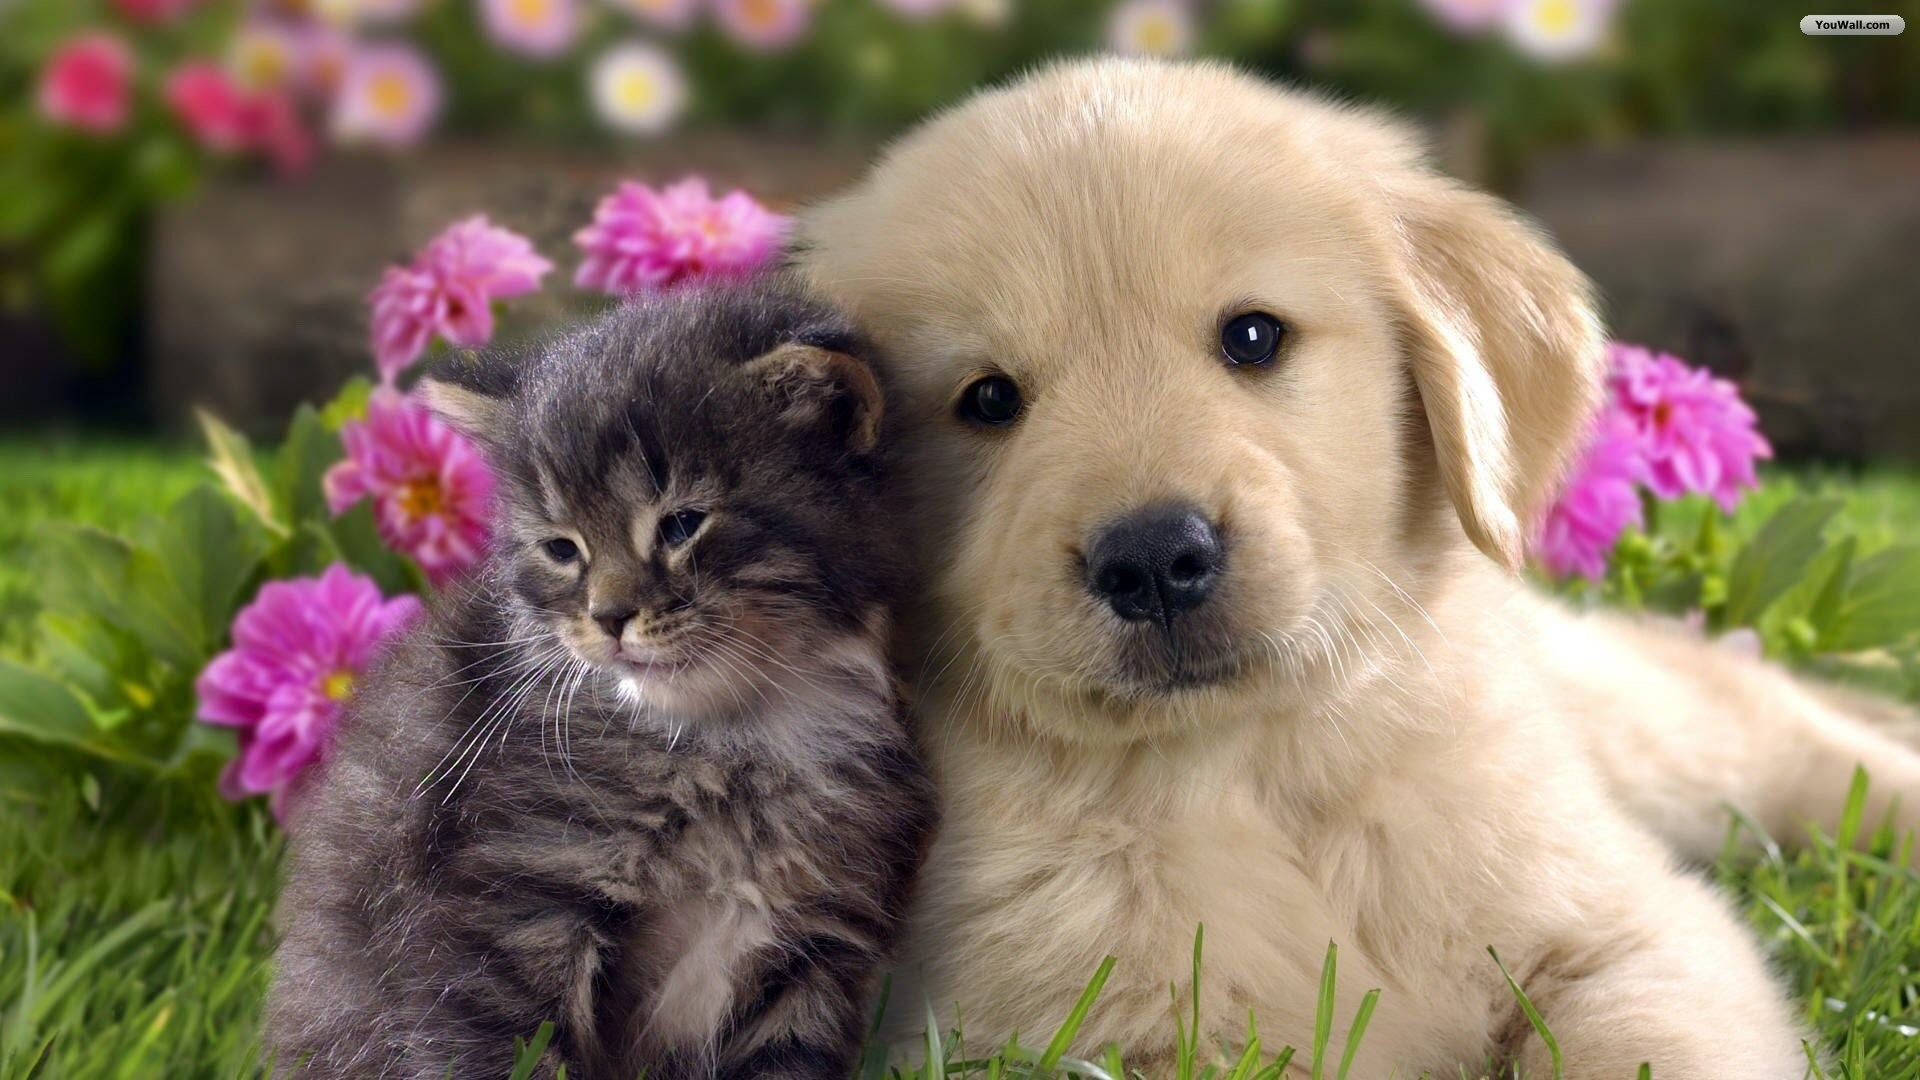 wallpapers,image,free images,Cats wallpapers,Cats,Dogs .